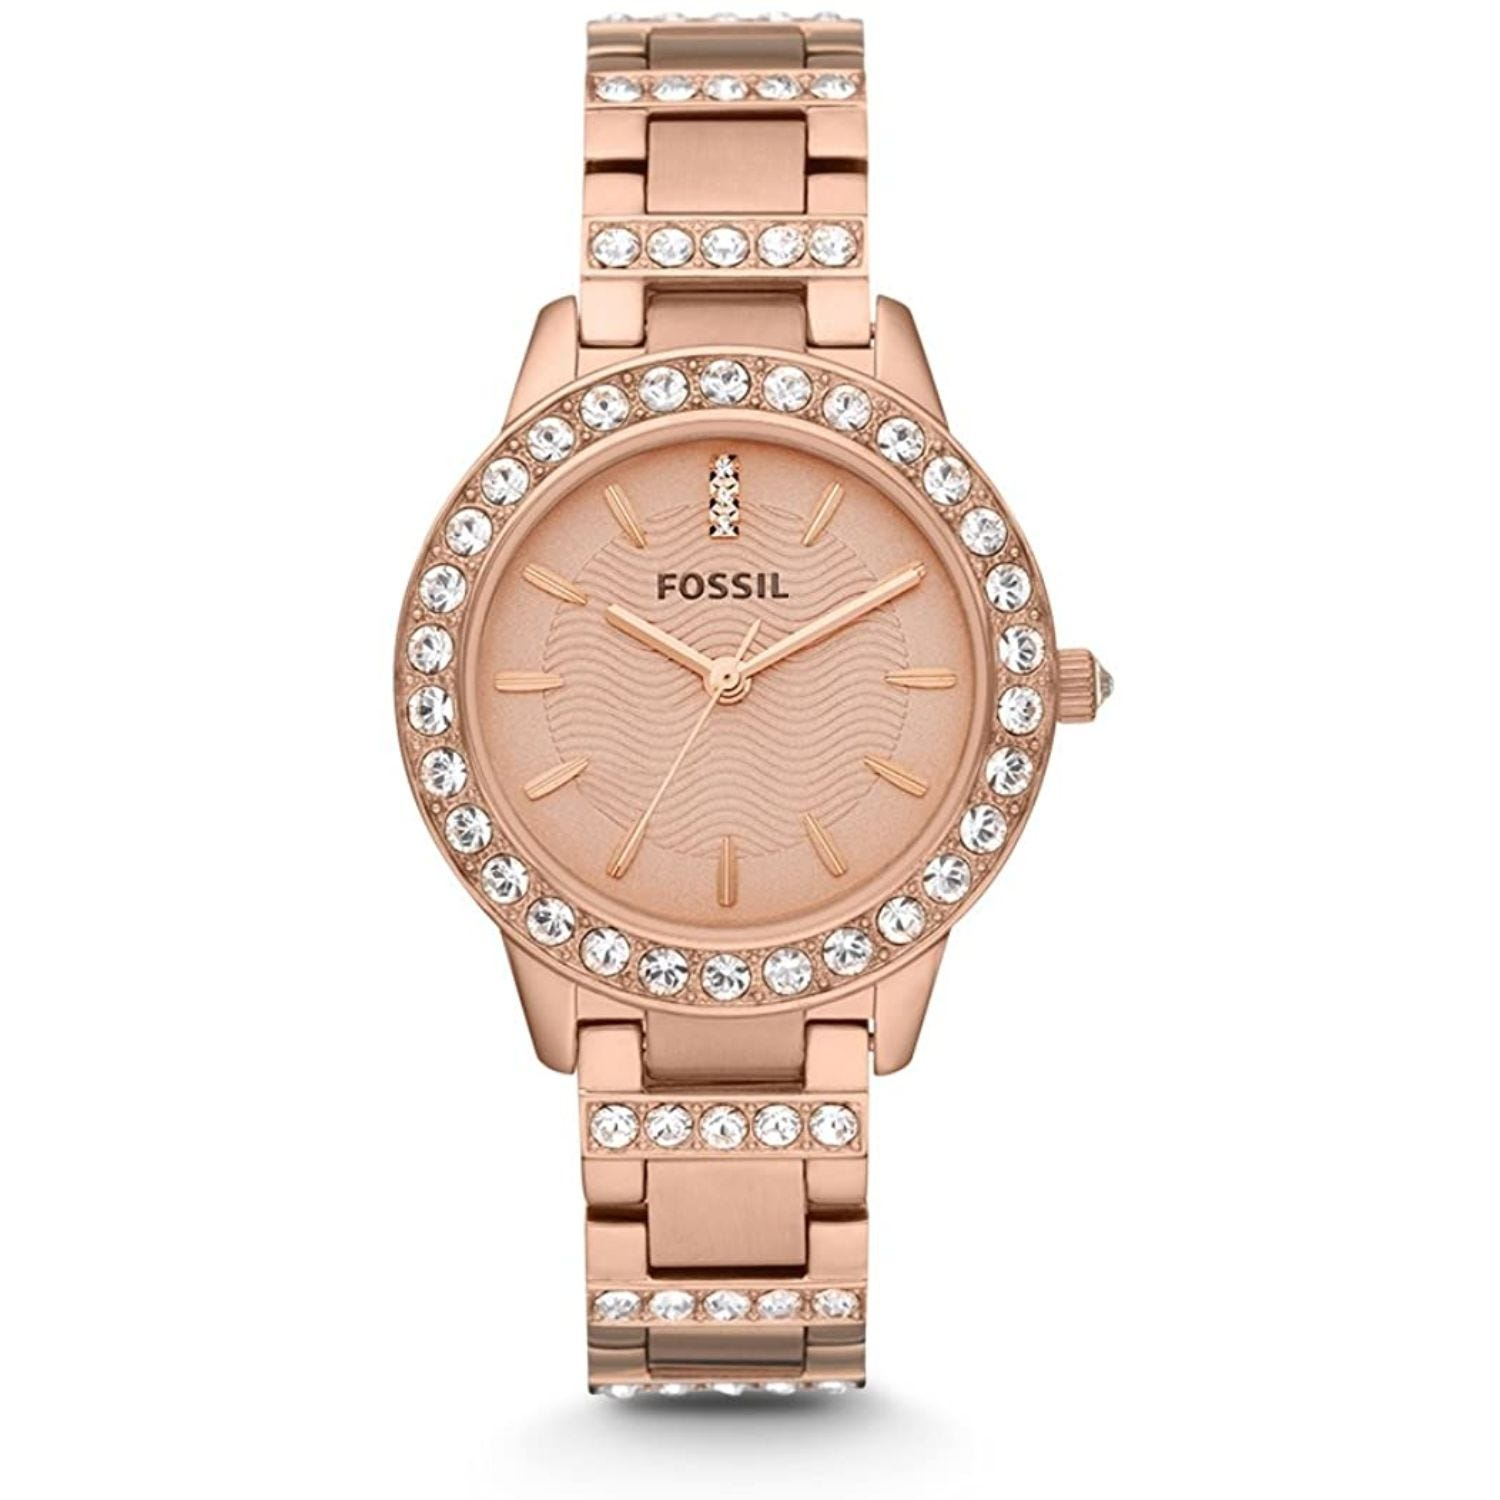 Fossil Jesse Red Gold Plated Rose Dial Glits Rose Bracelet Watch